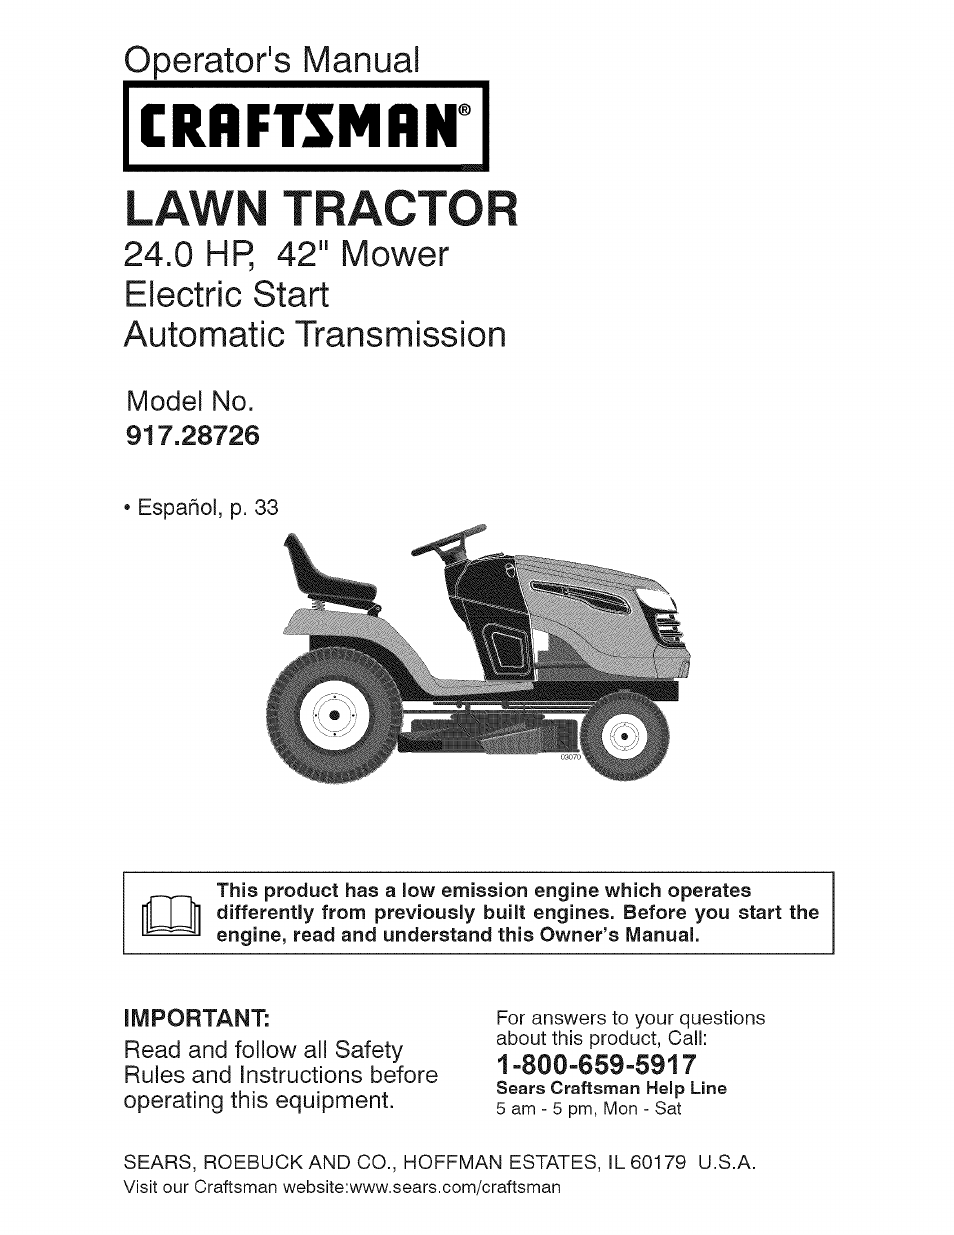 Craftsman 917 28726 User Manual